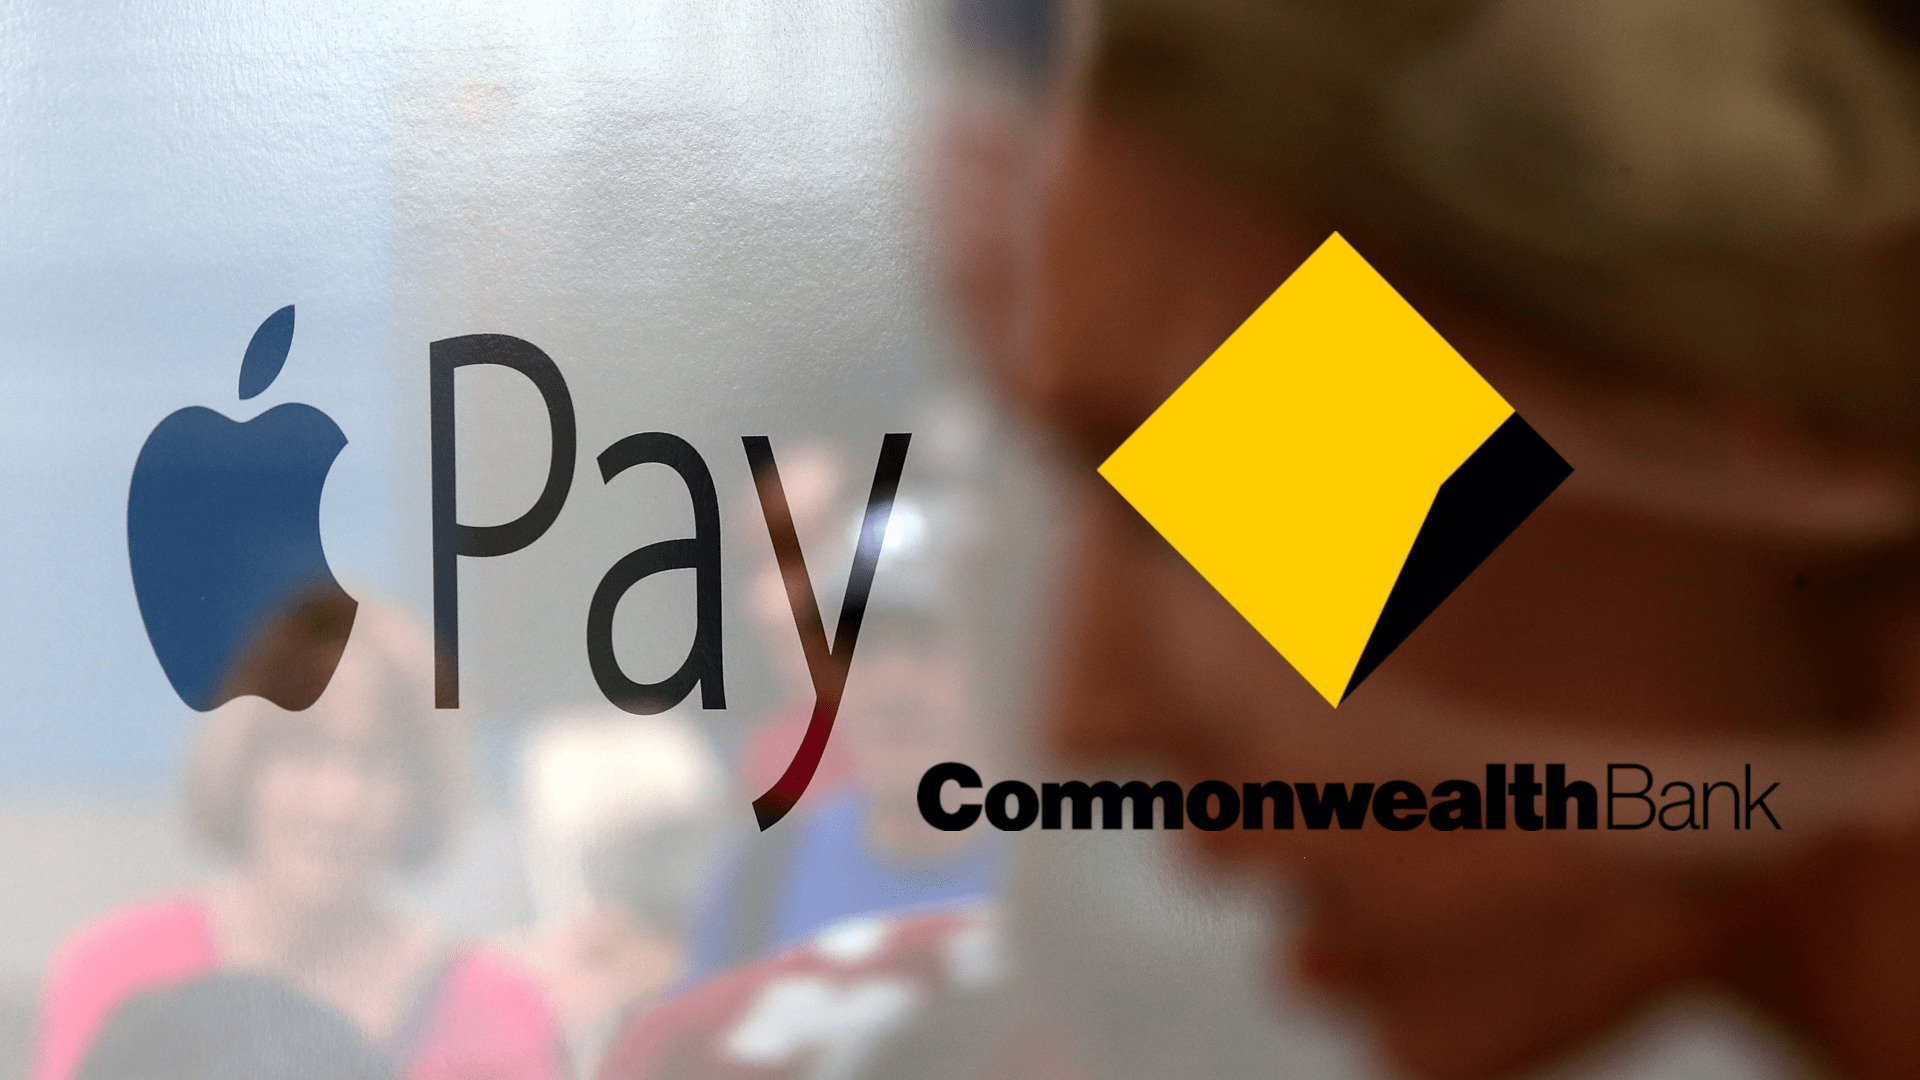 The Commonwealth Bank of Australia will support Apple Pay